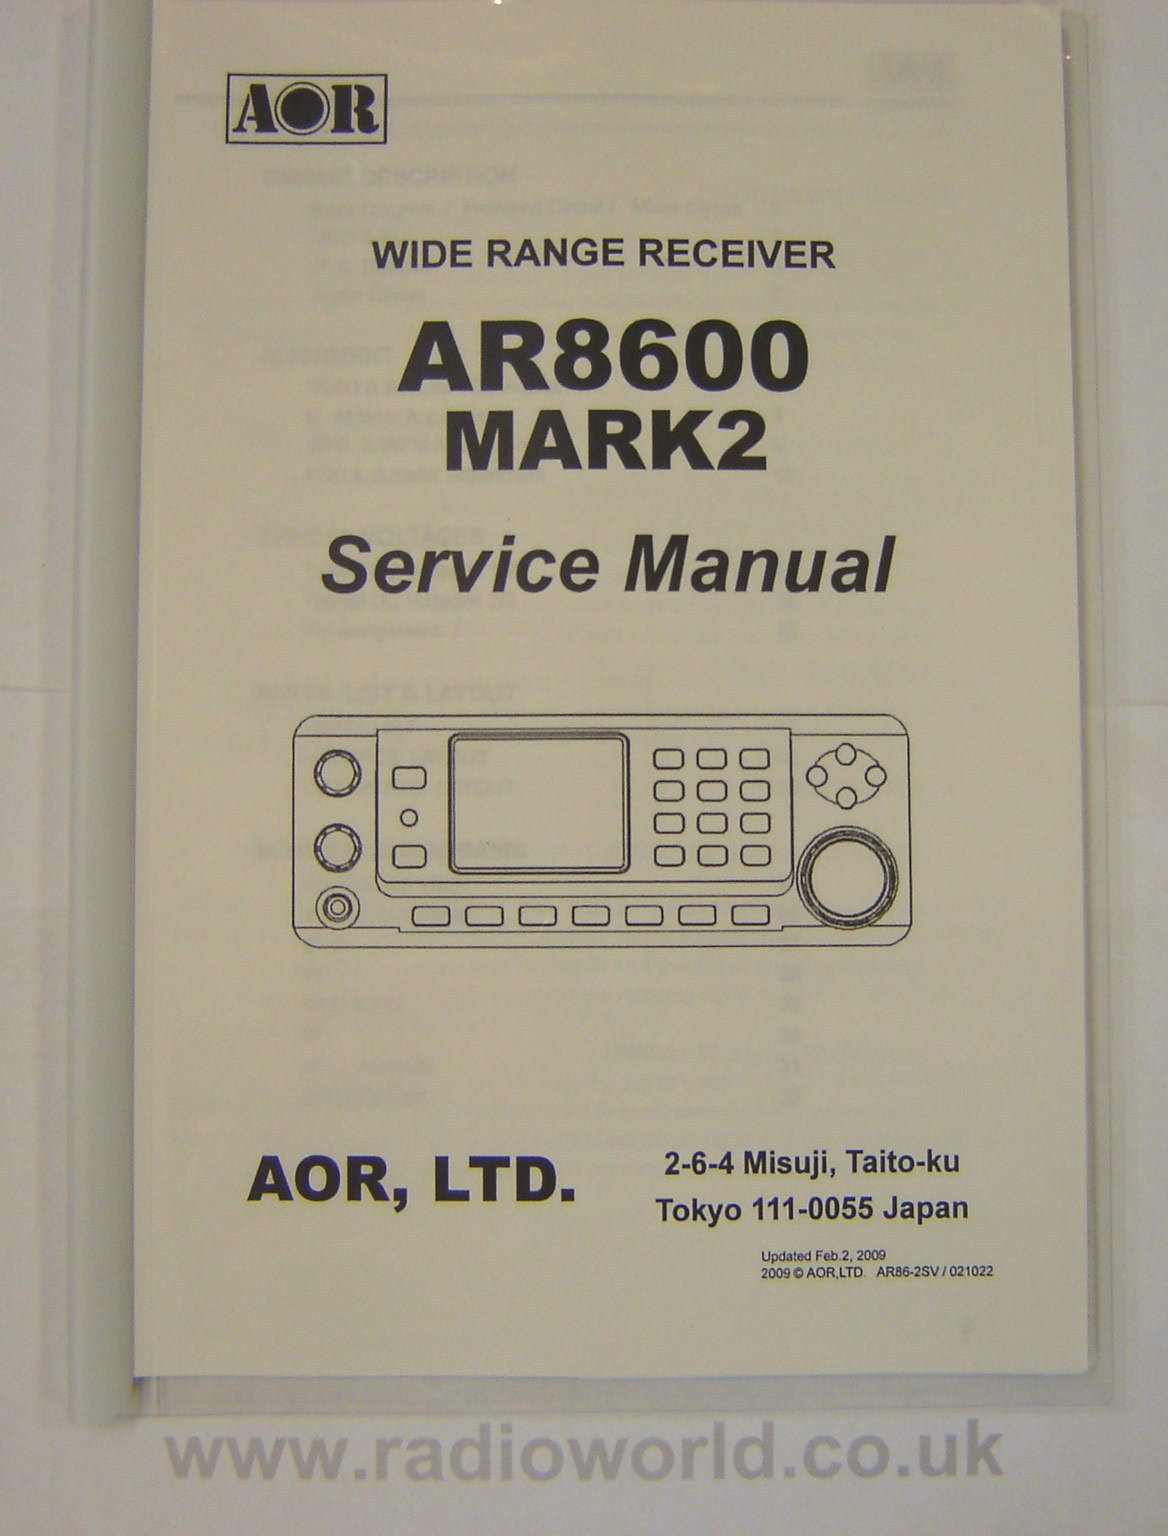 AOR SM-8600-2 Service Manual for AR-8600 Mk2